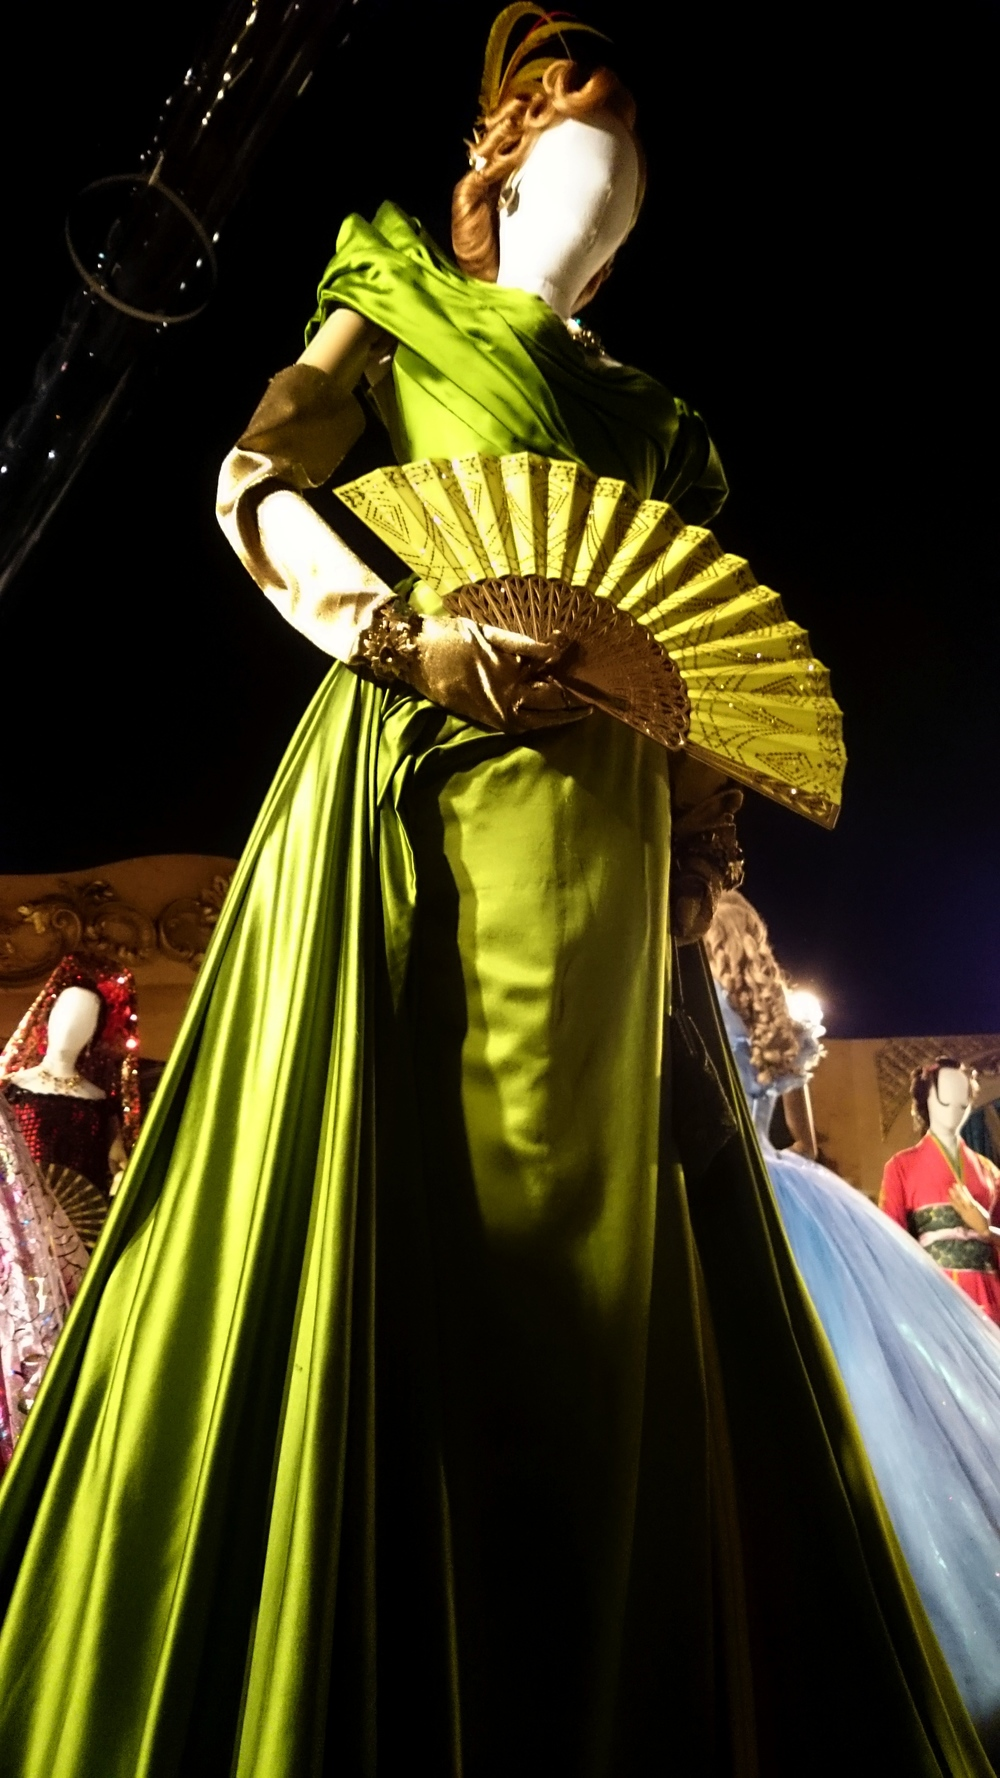 Lady Tremaine's envy green ball gown